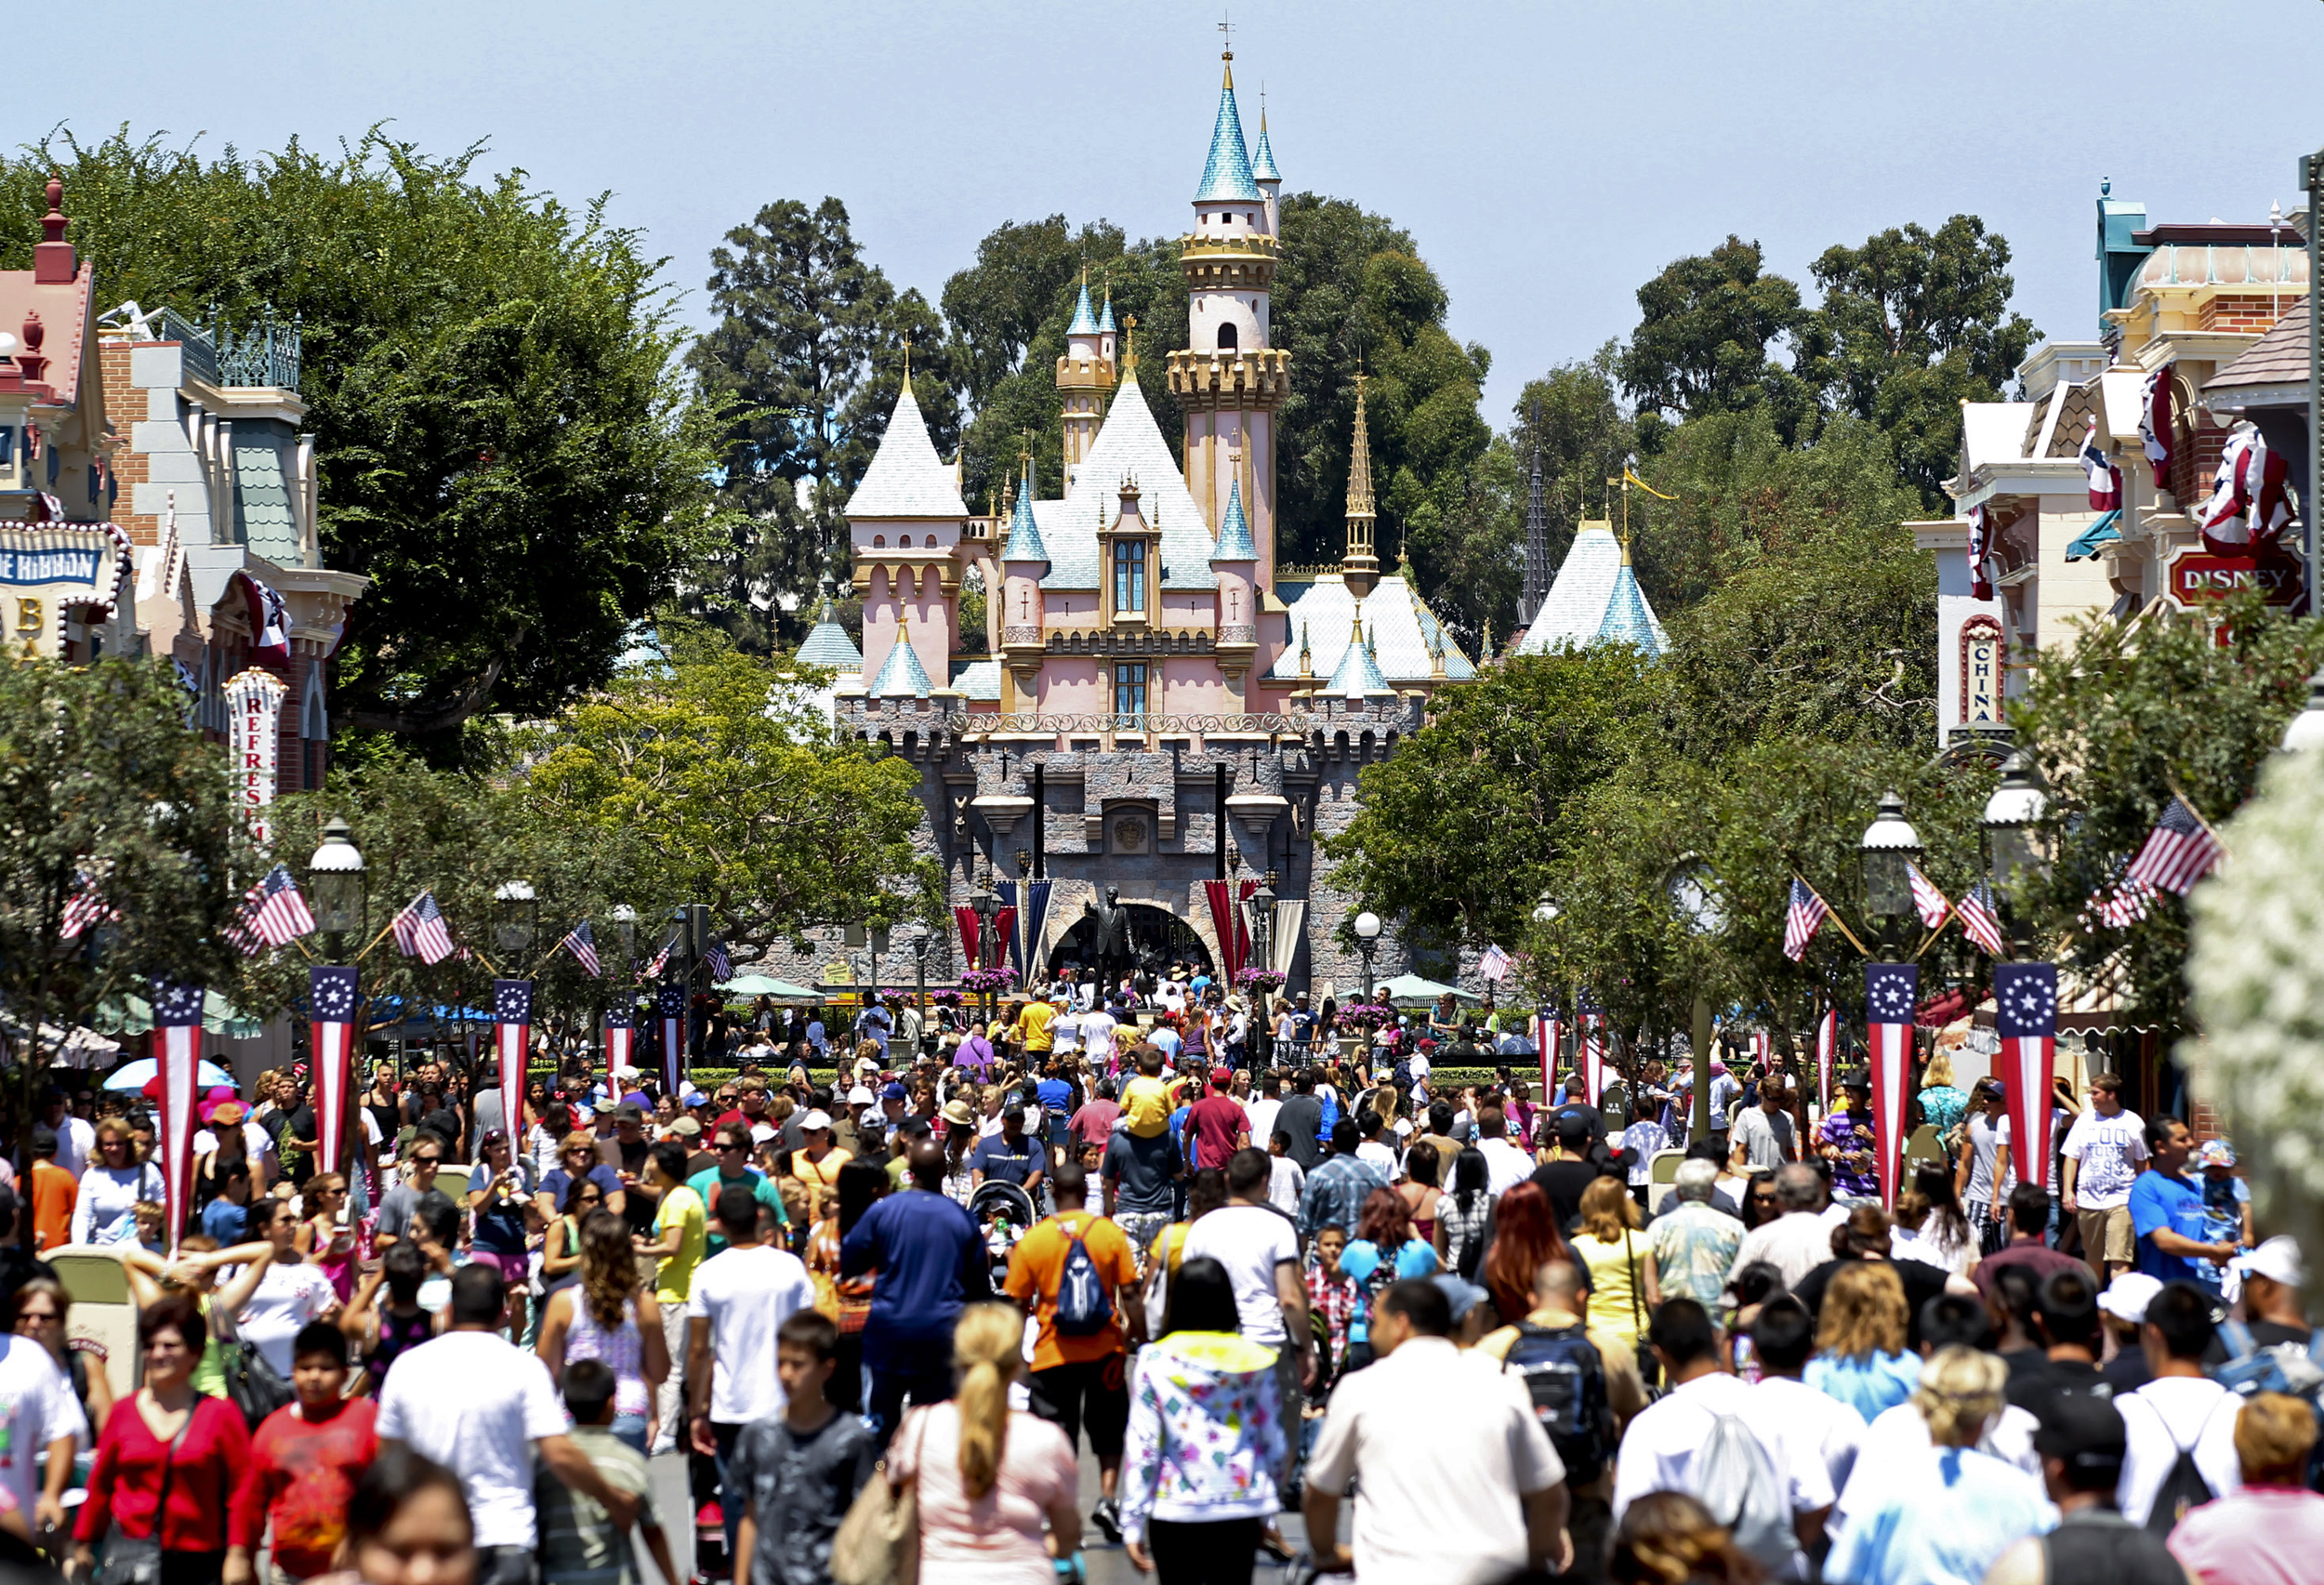 Visitors To Disneyland In California May Have Been Exposed To Measles